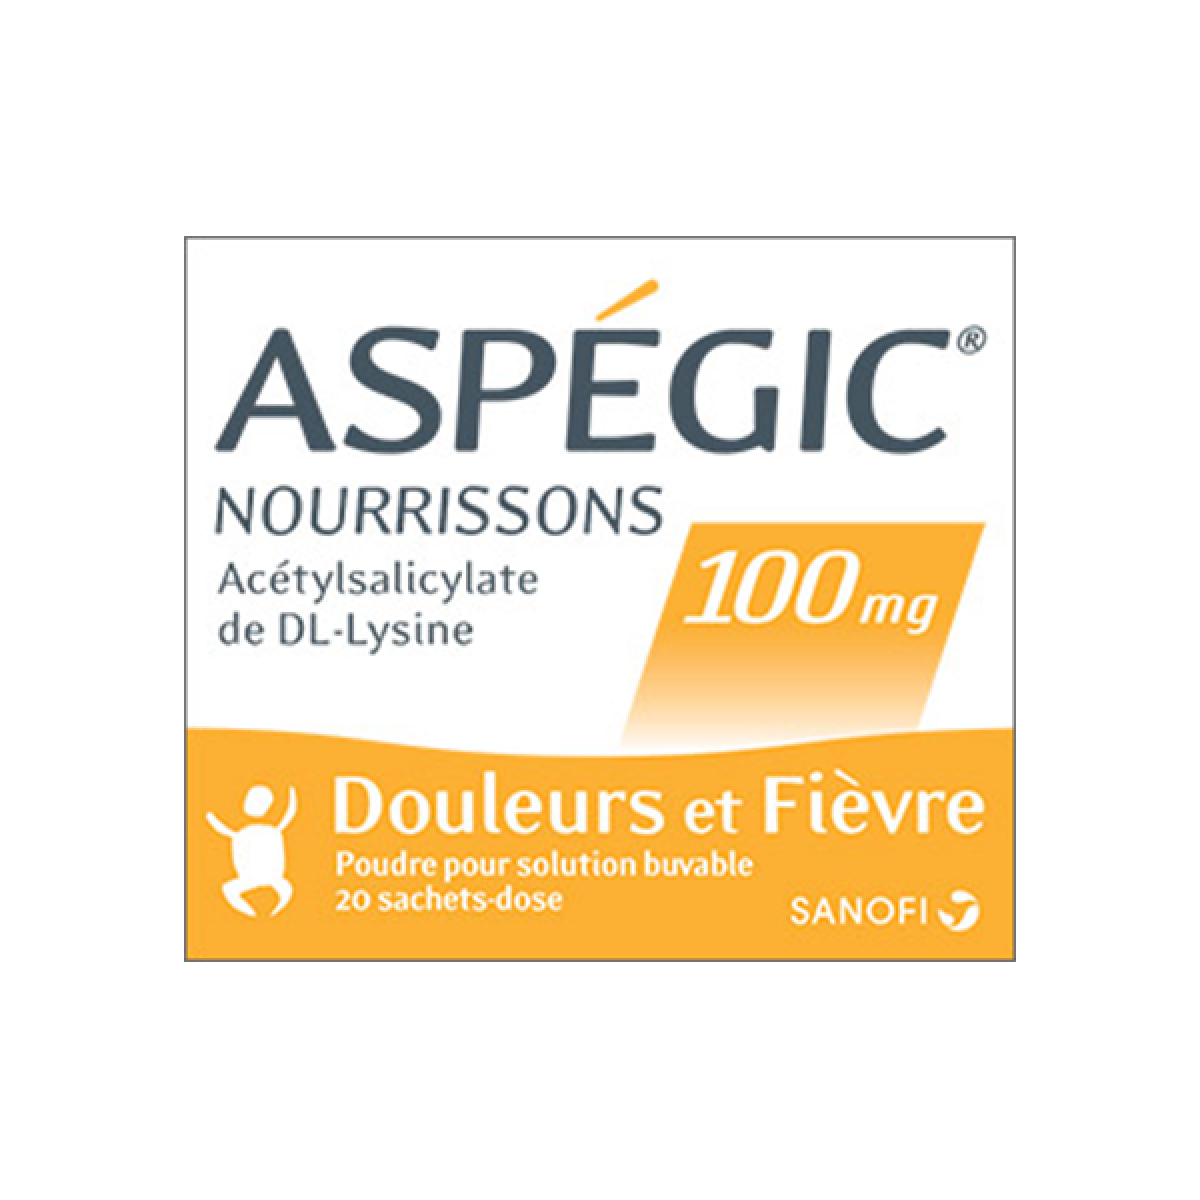 asp gic nourrisson 100mg 20 sachets dose dans douleurs fi vre migraine sur pharmarket. Black Bedroom Furniture Sets. Home Design Ideas